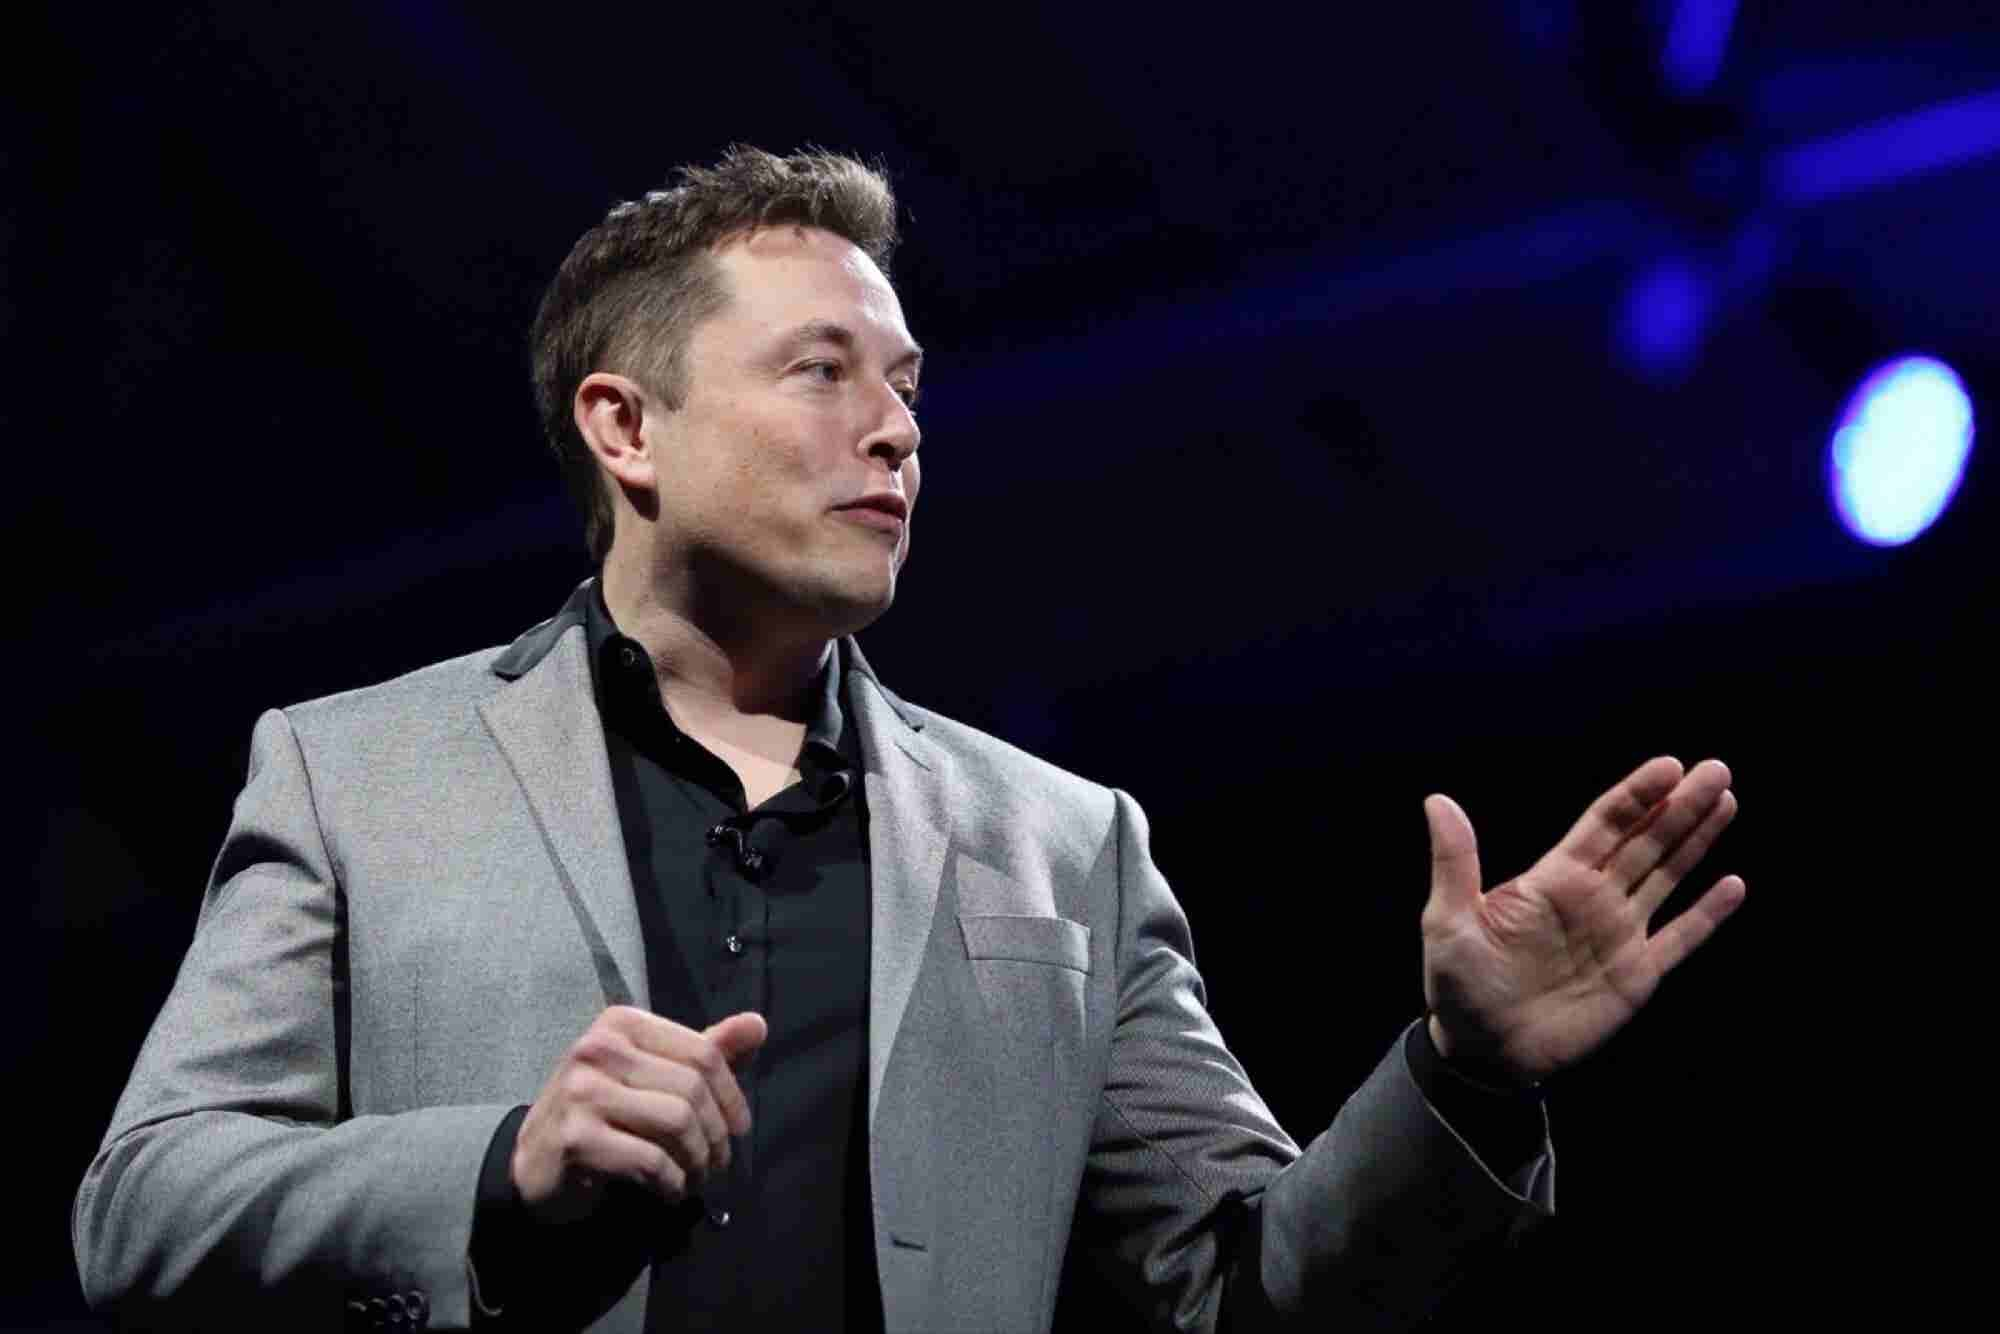 Elon Musk's Name Can Get You Locked Out of Twitter, and 26 Other Weird...